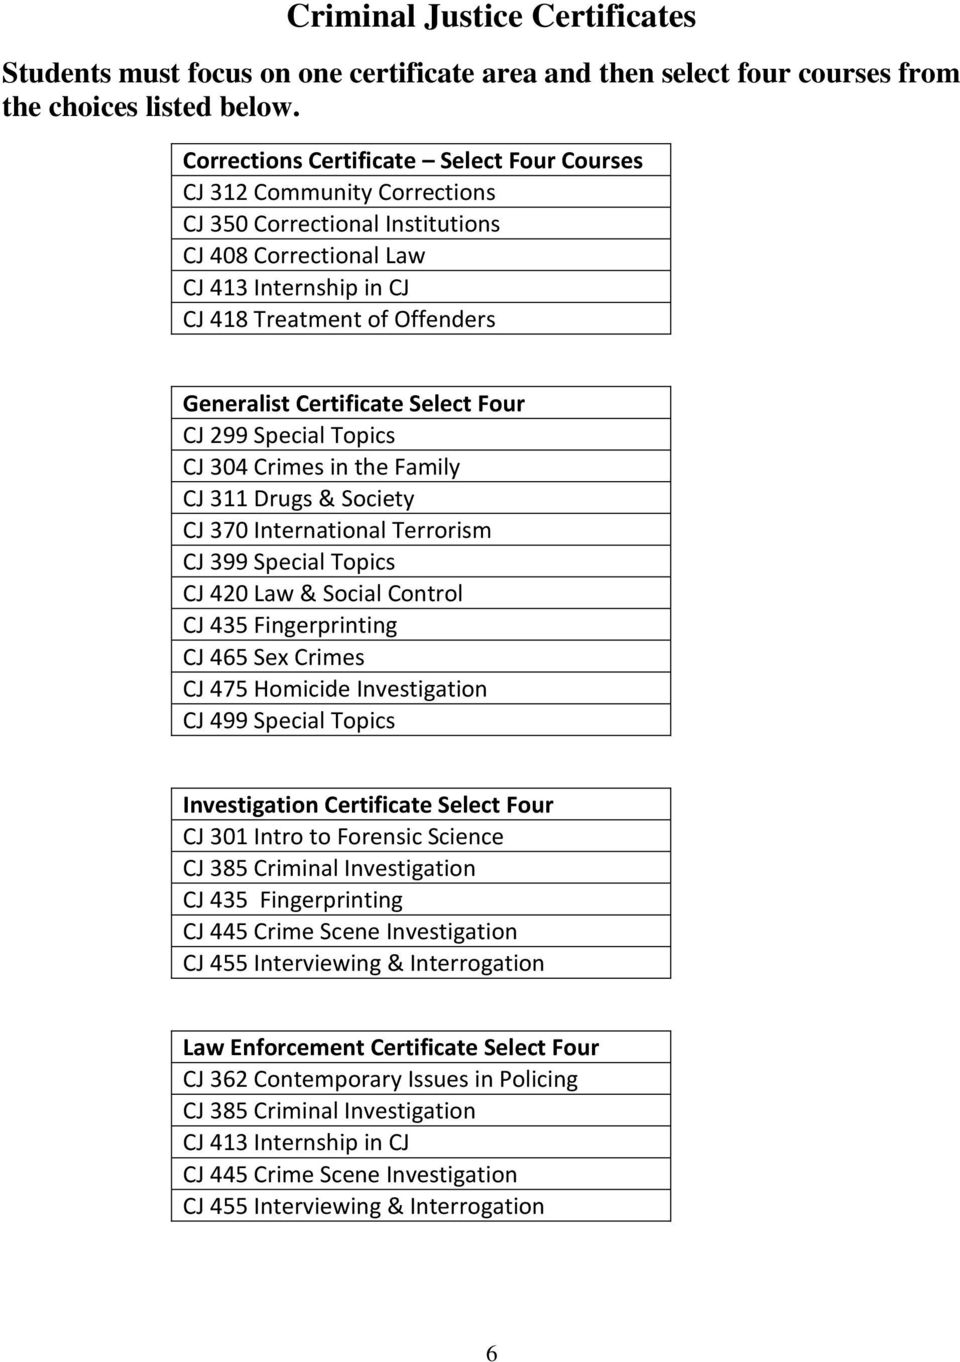 Certificate Select Four CJ 299 Special Topics CJ 304 Crimes in the Family CJ 311 Drugs & Society CJ 370 International Terrorism CJ 399 Special Topics CJ 420 Law & Social Control CJ 435 Fingerprinting